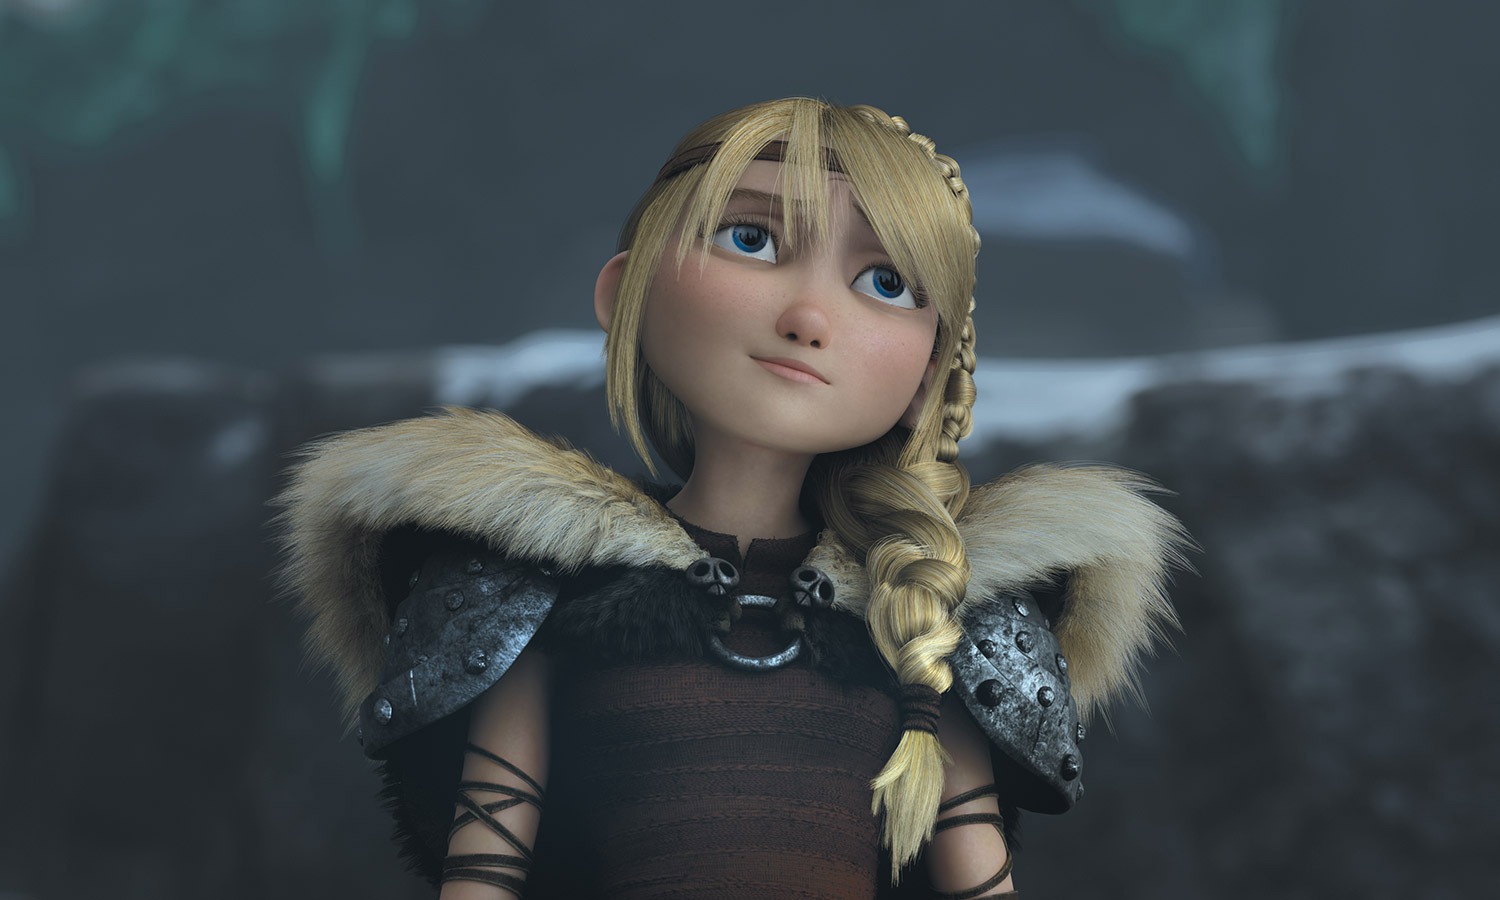 Uncategorized Astrid From How To Train Your Dragon image astrid hofferson jpg how to train your dragon wiki fandom powered by wikia